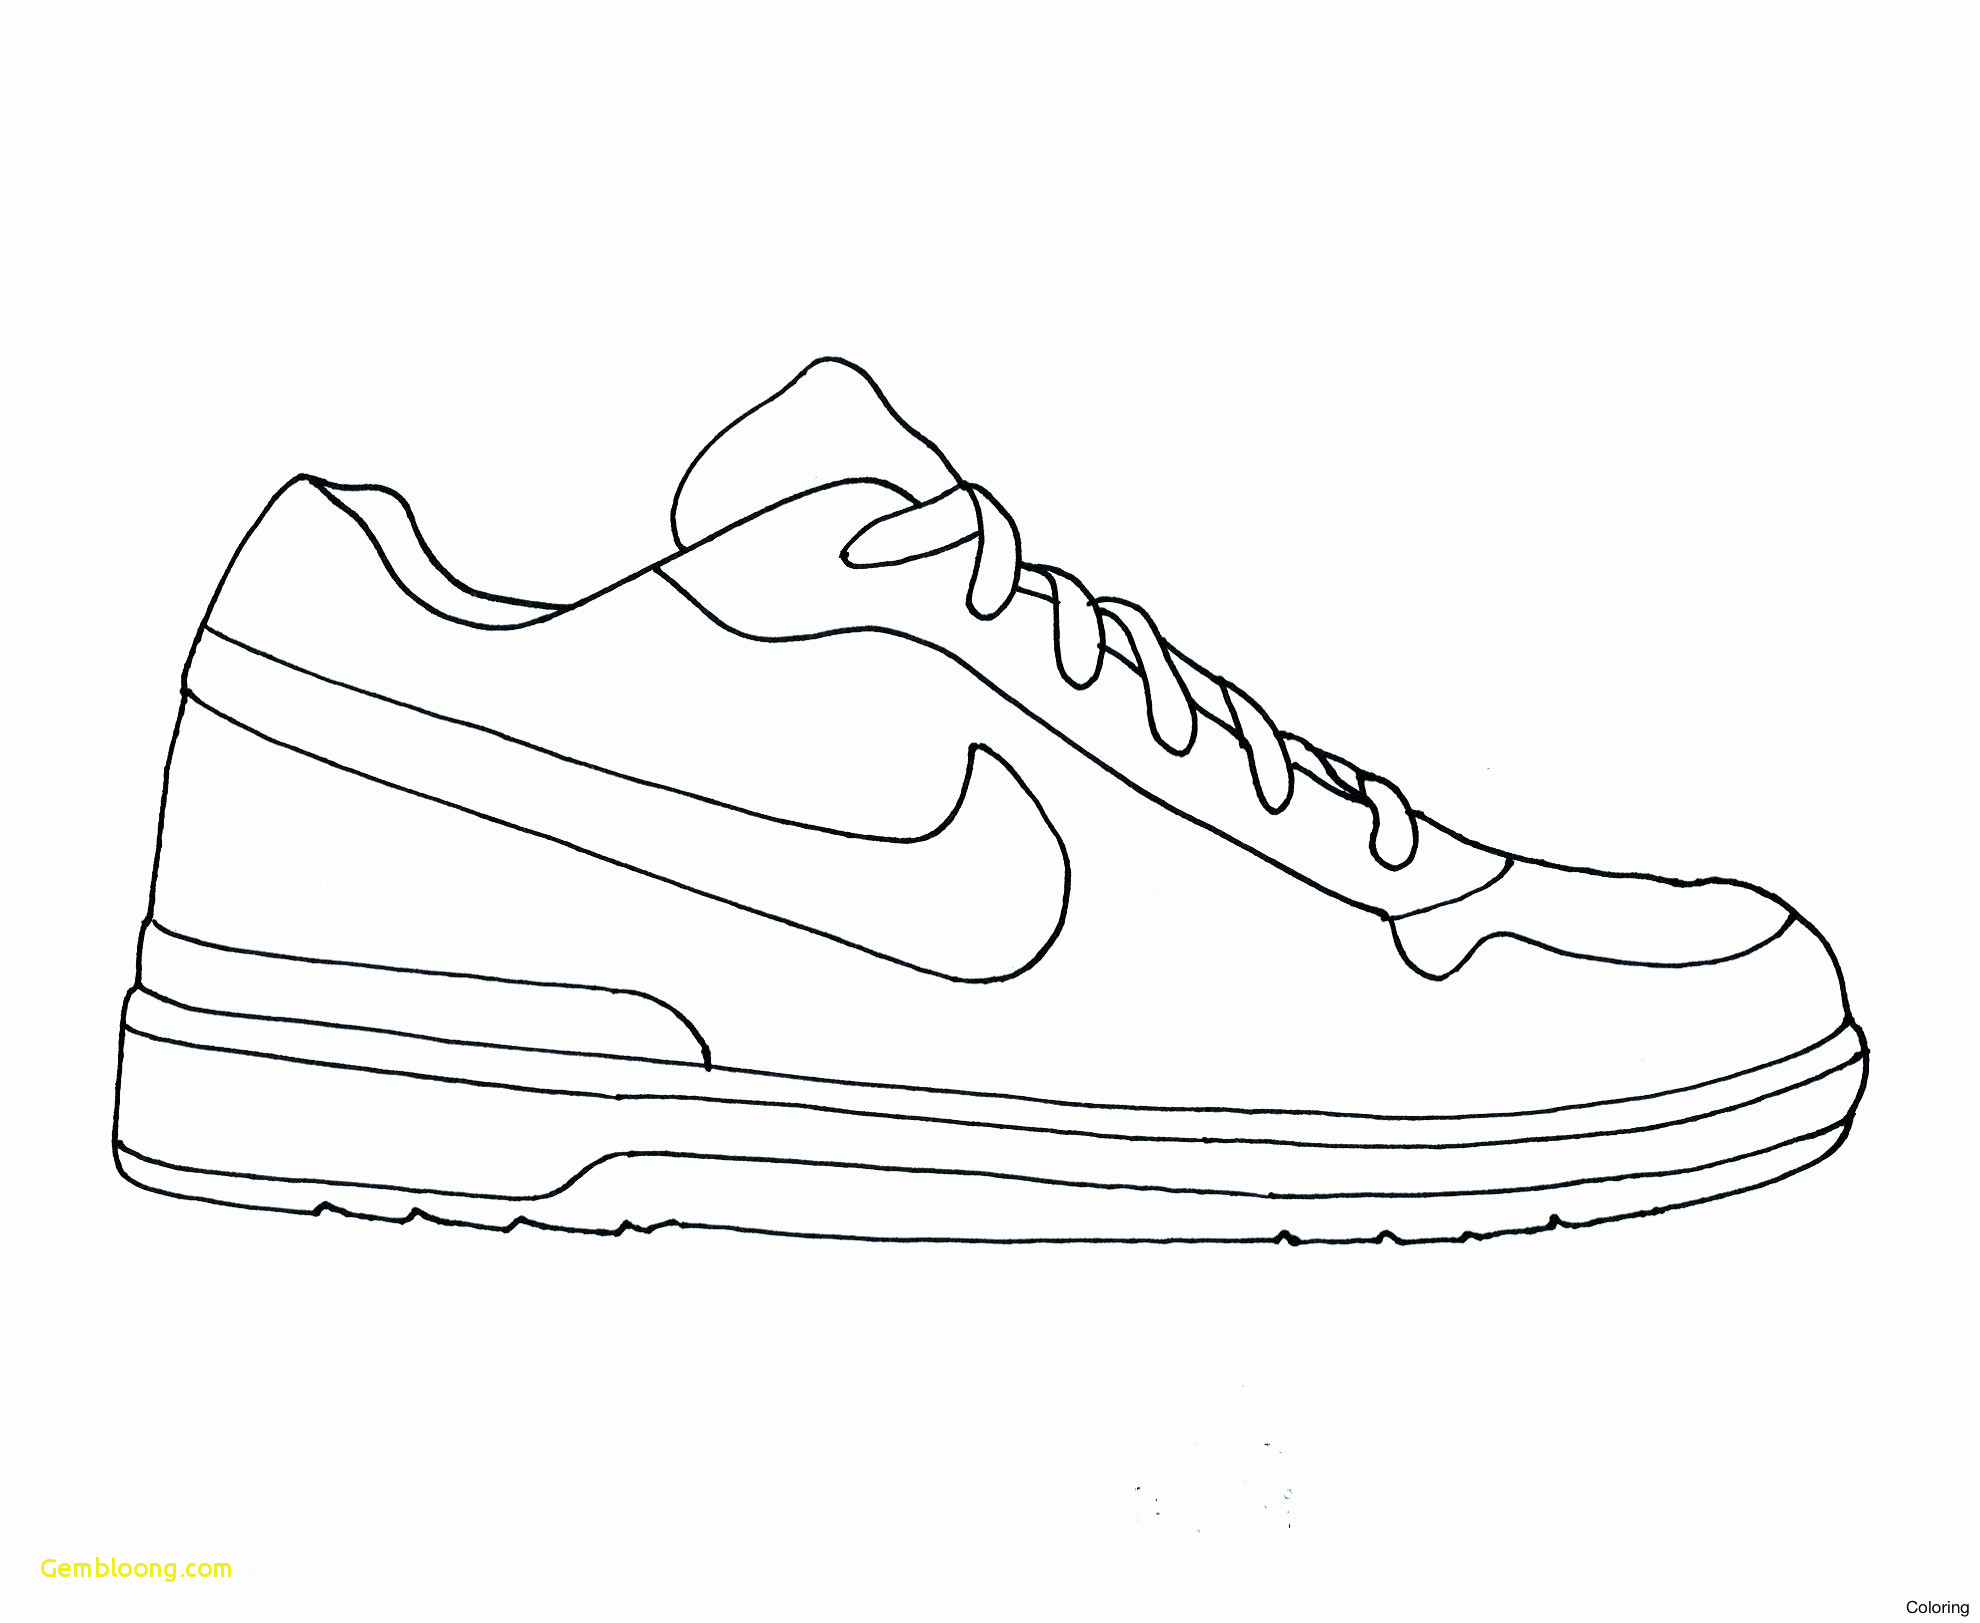 Nike Coloring Pages 24 Jordan Shoes Drawing Exotic 13 Luxury Nike Shoes Coloring Pages